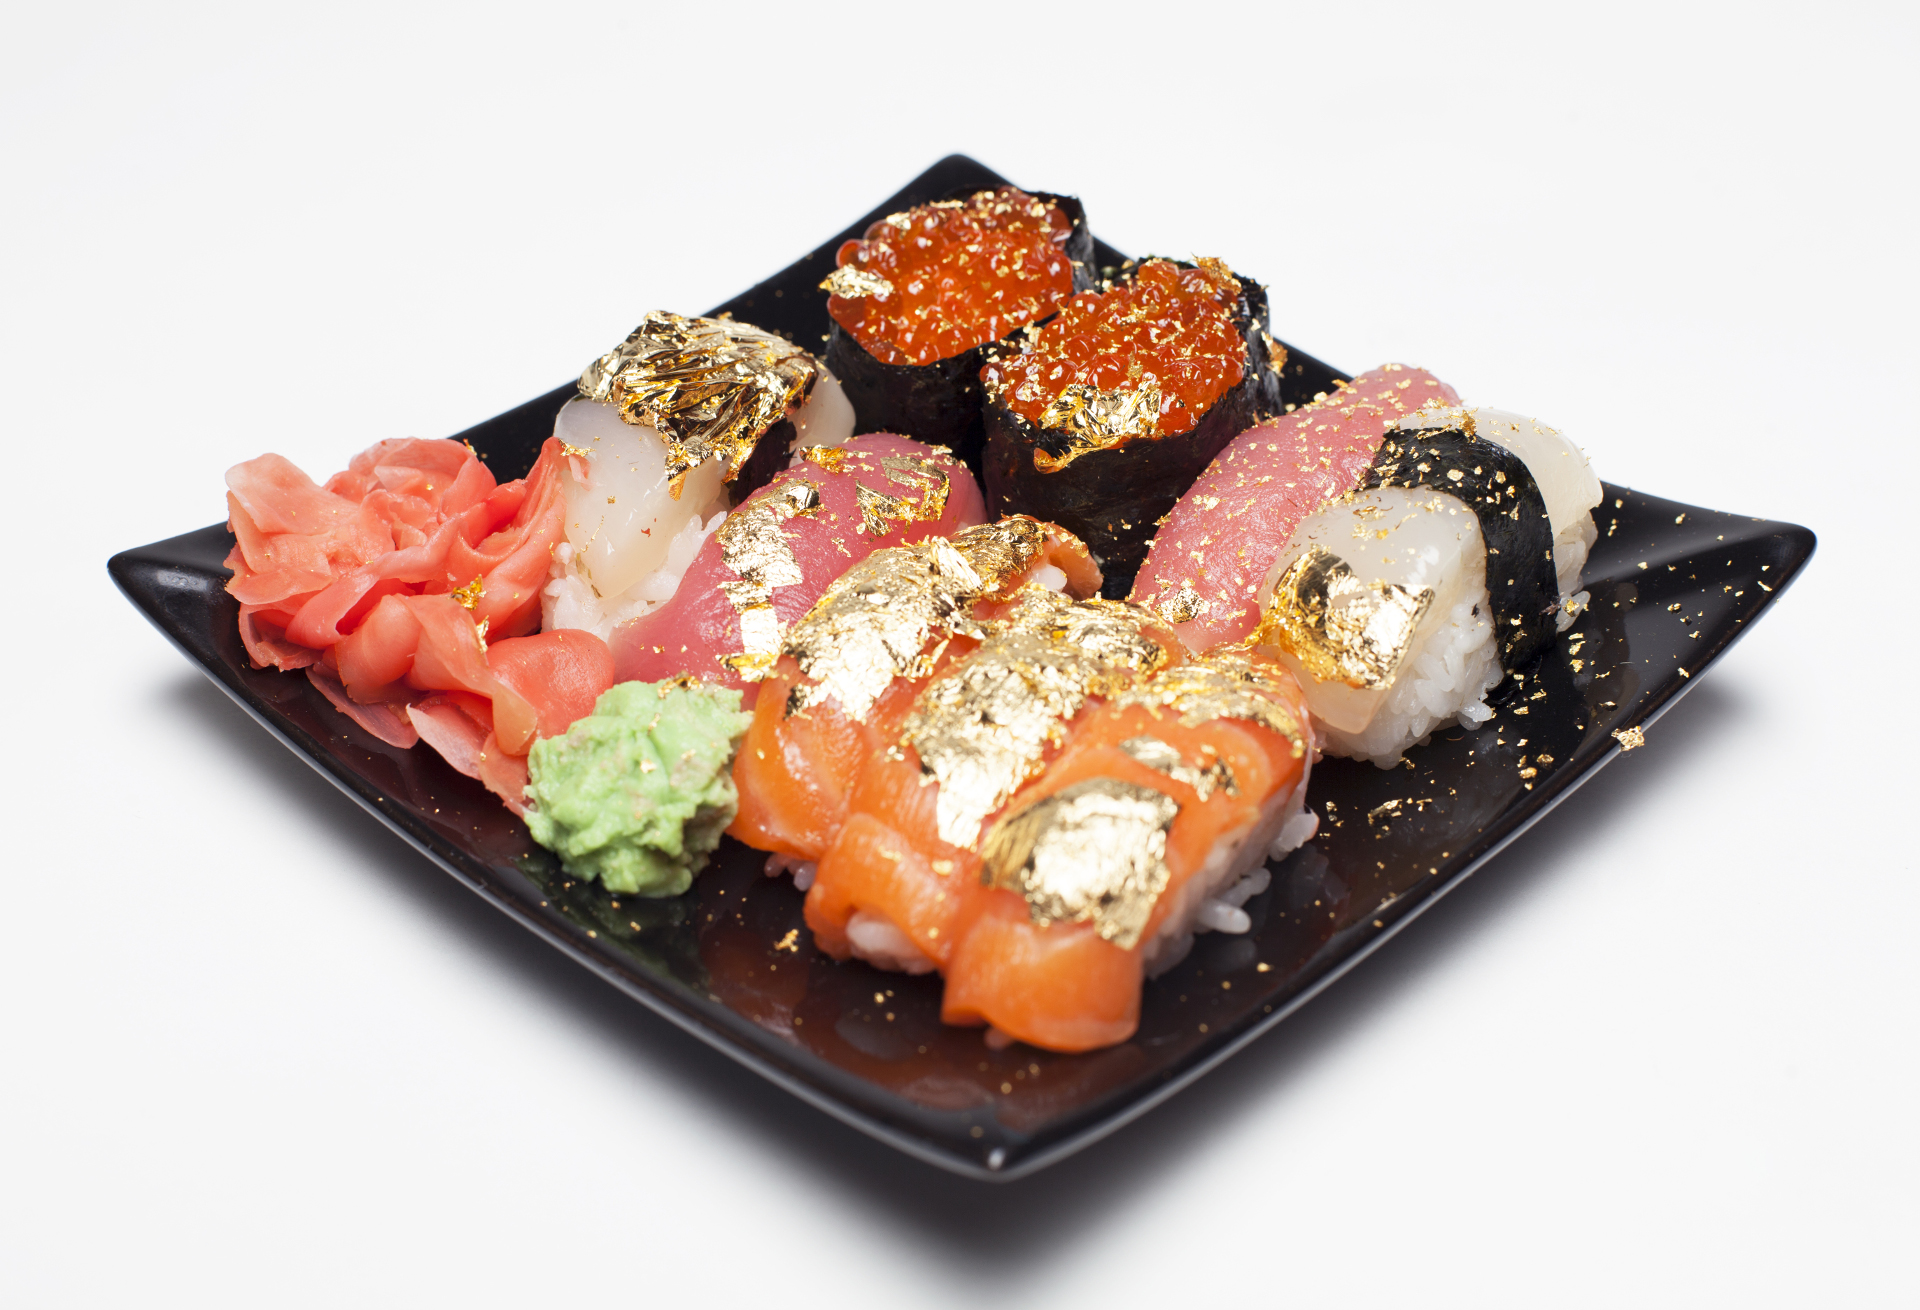 Edible Gold on Sushi and Sashimi